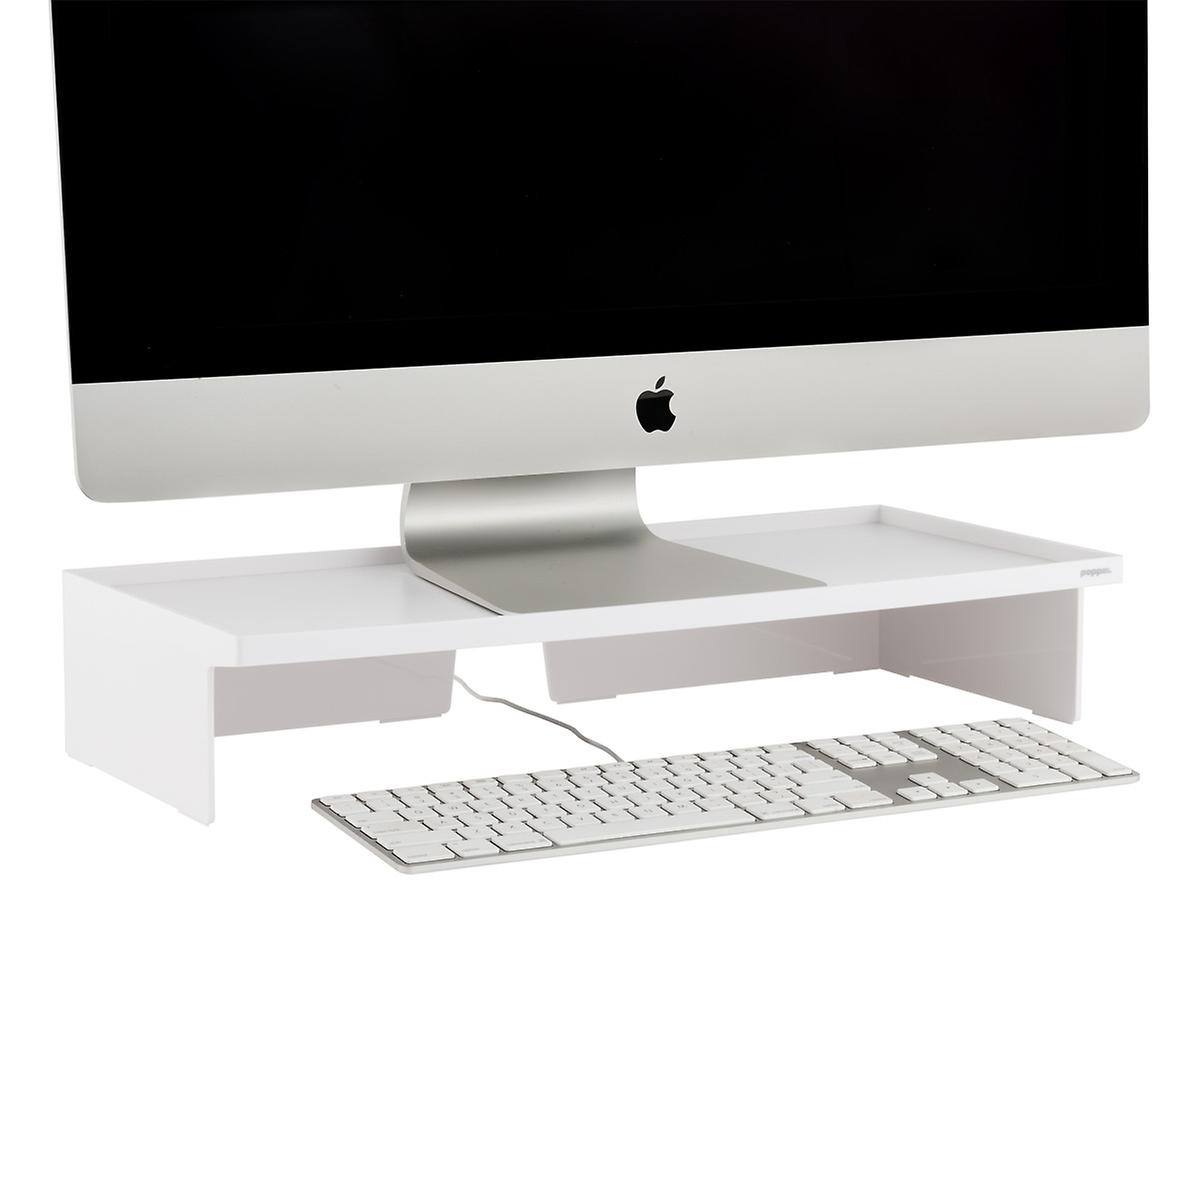 Amazon.com: Samsung Simple LED 27-Inch Monitor, White with ...   White Monitor